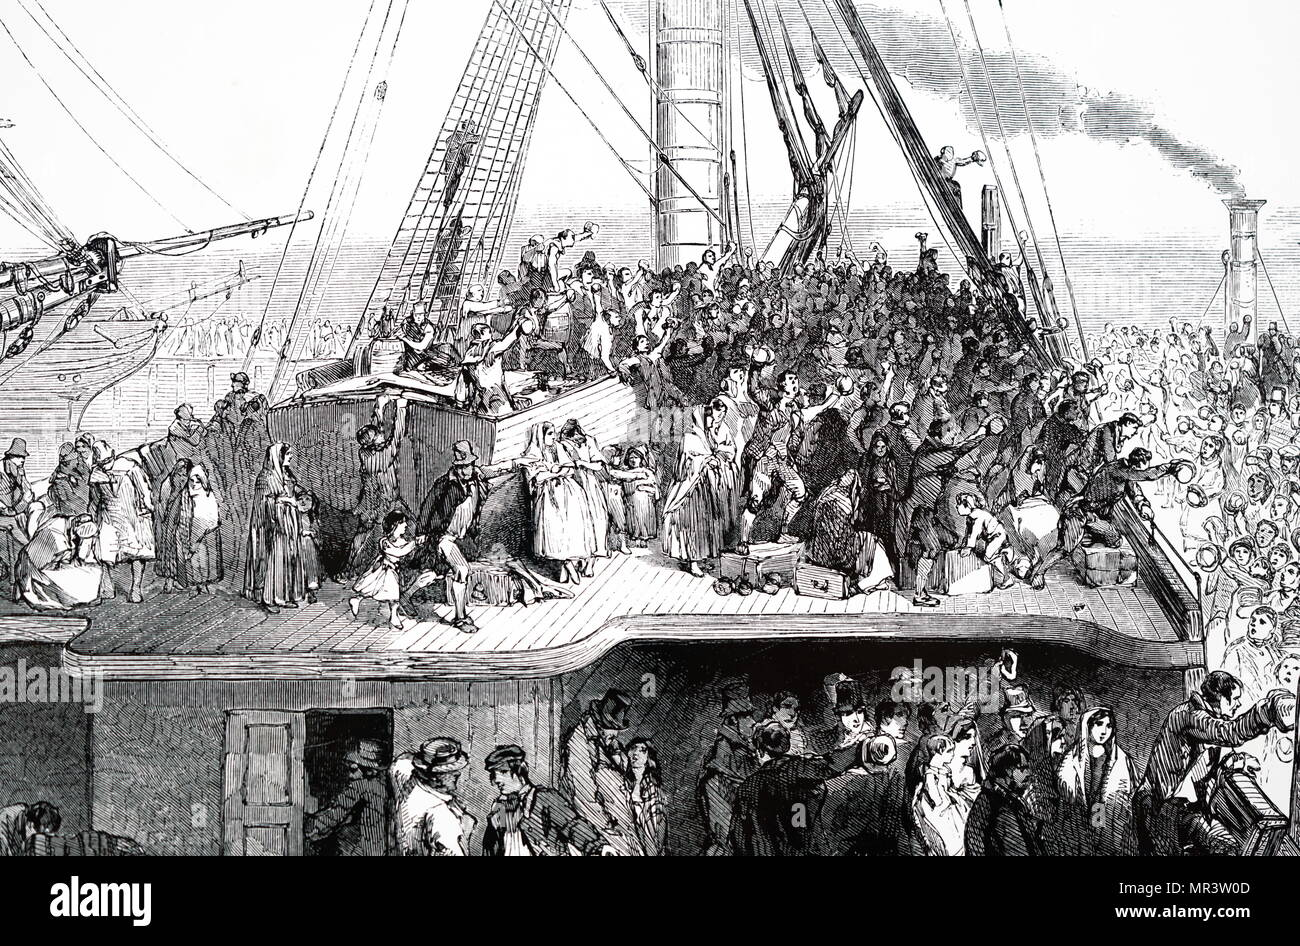 Illustration depicting an emigrant ship leaving Liverpool for America. Dated 19th century - Stock Image